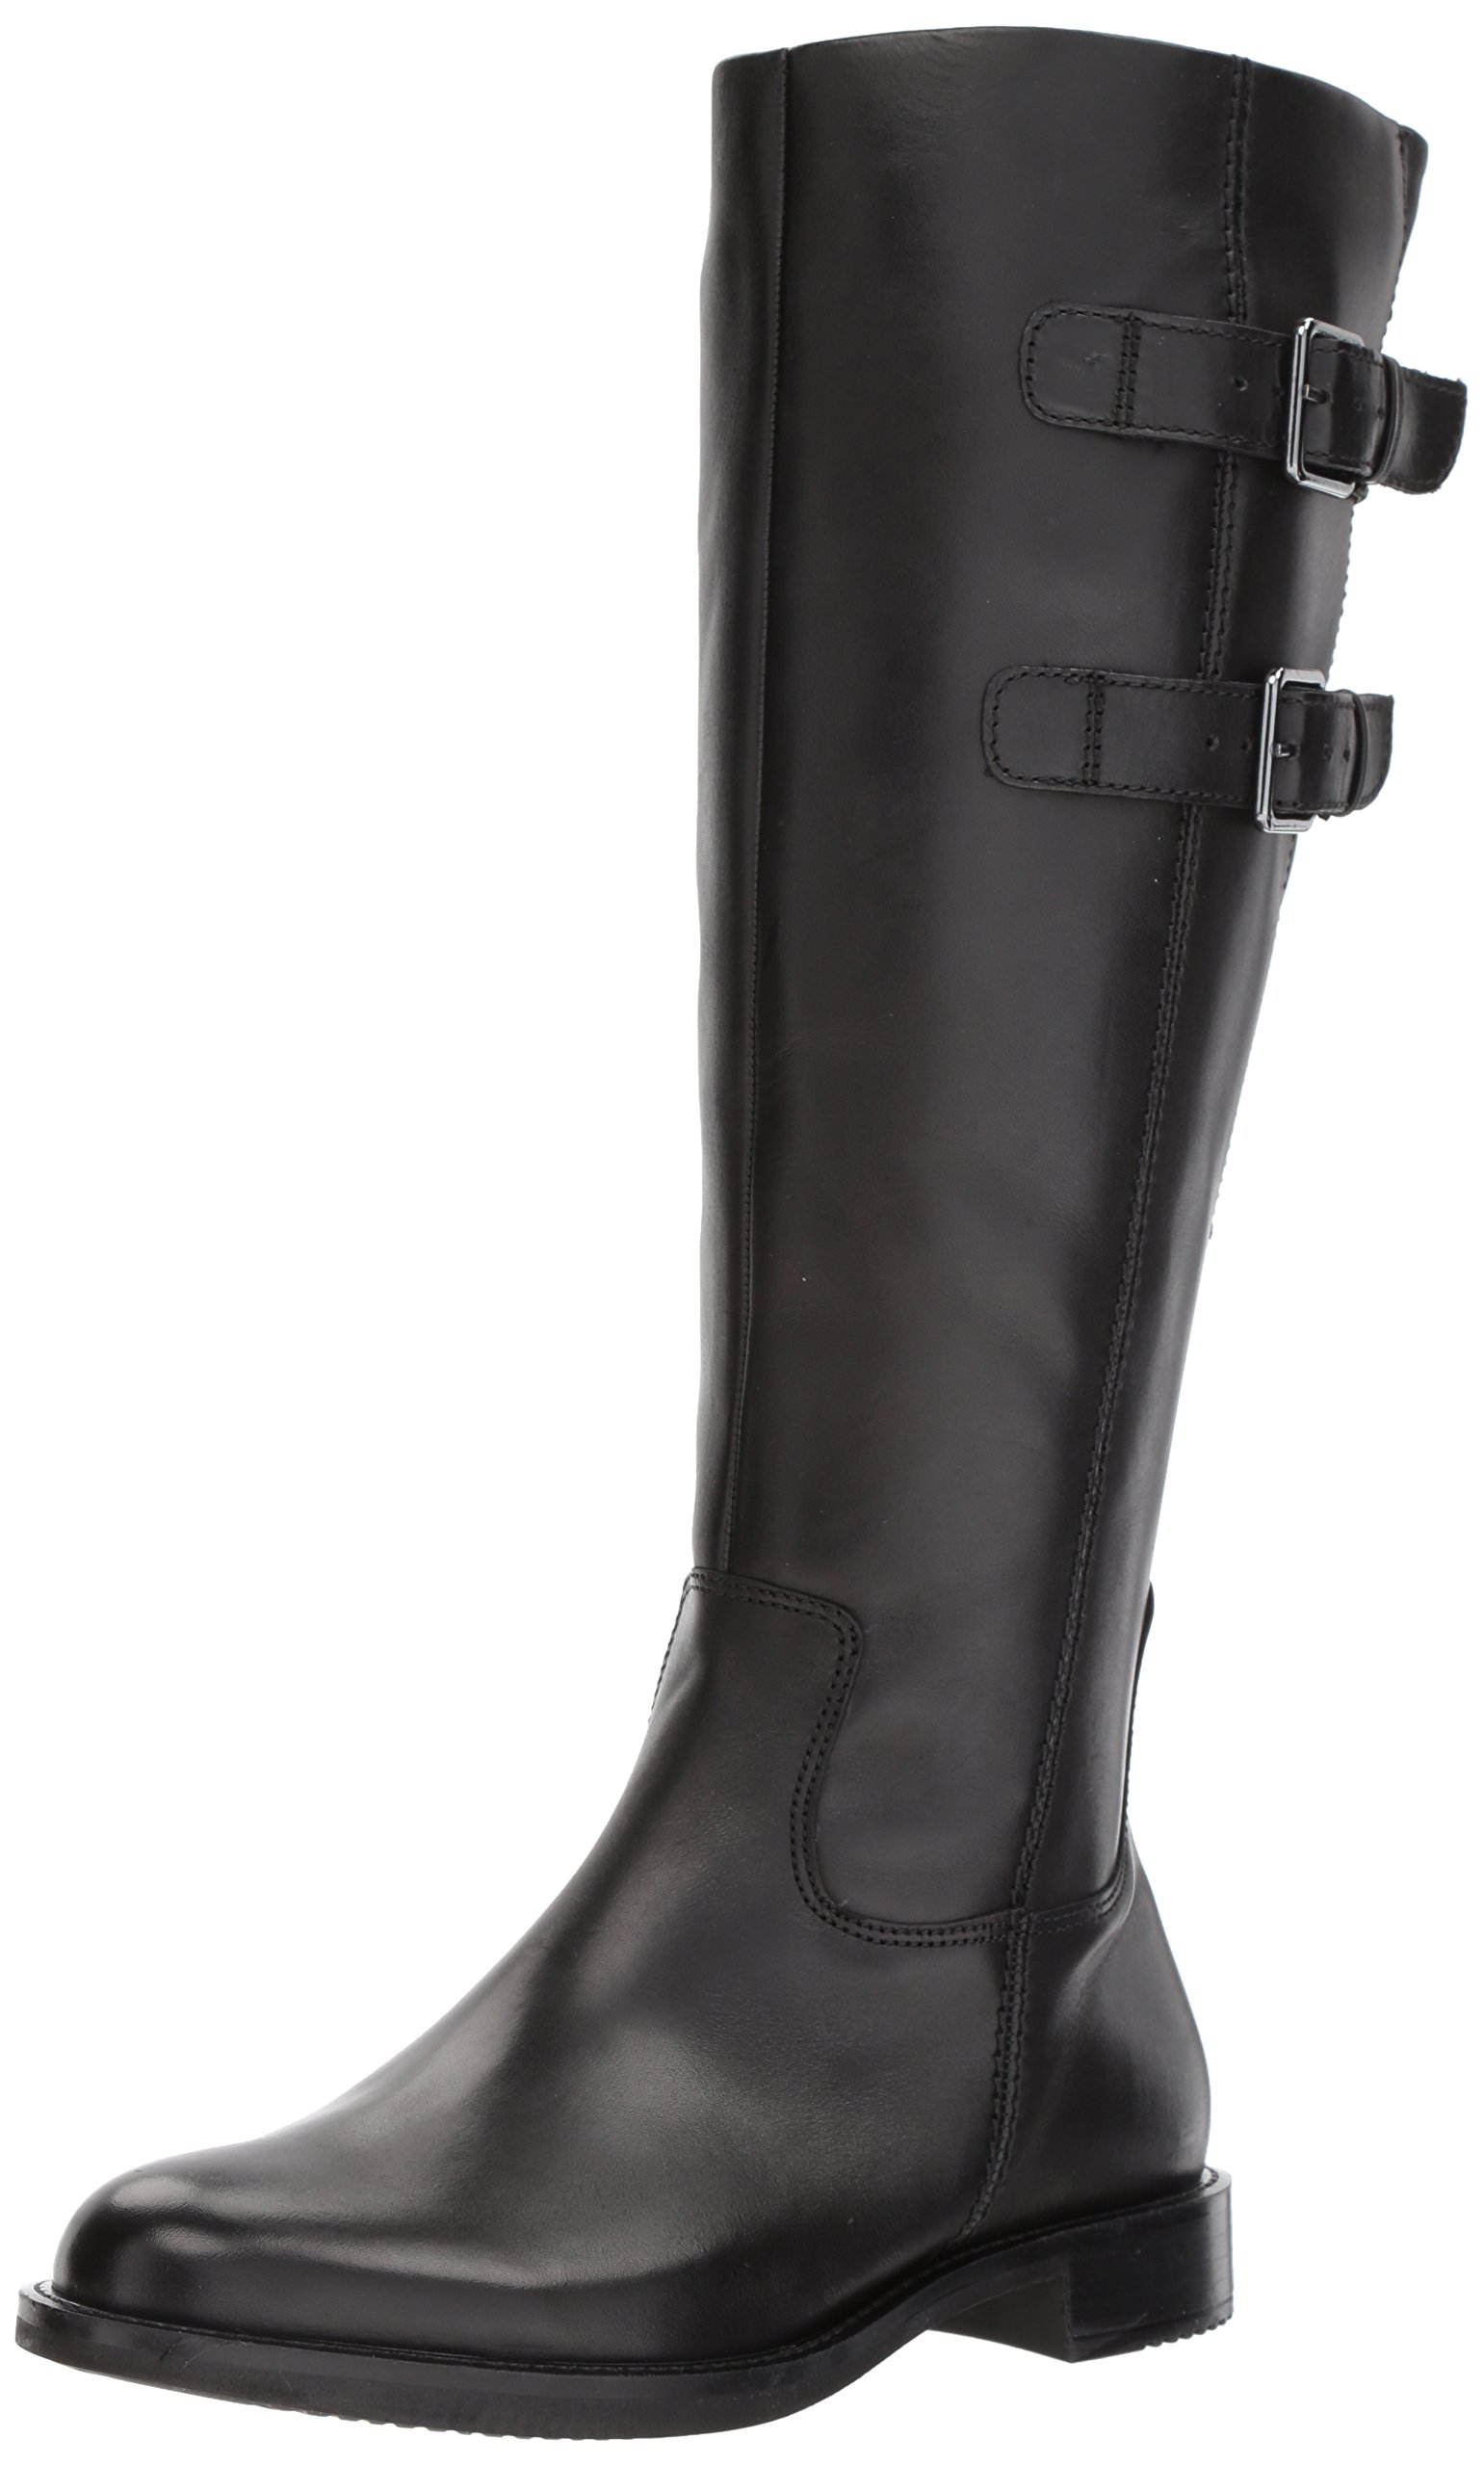 ECCO Women's Shape 25 Tall Buckle Riding Boot,Black,37 EU/6-6.5 M US